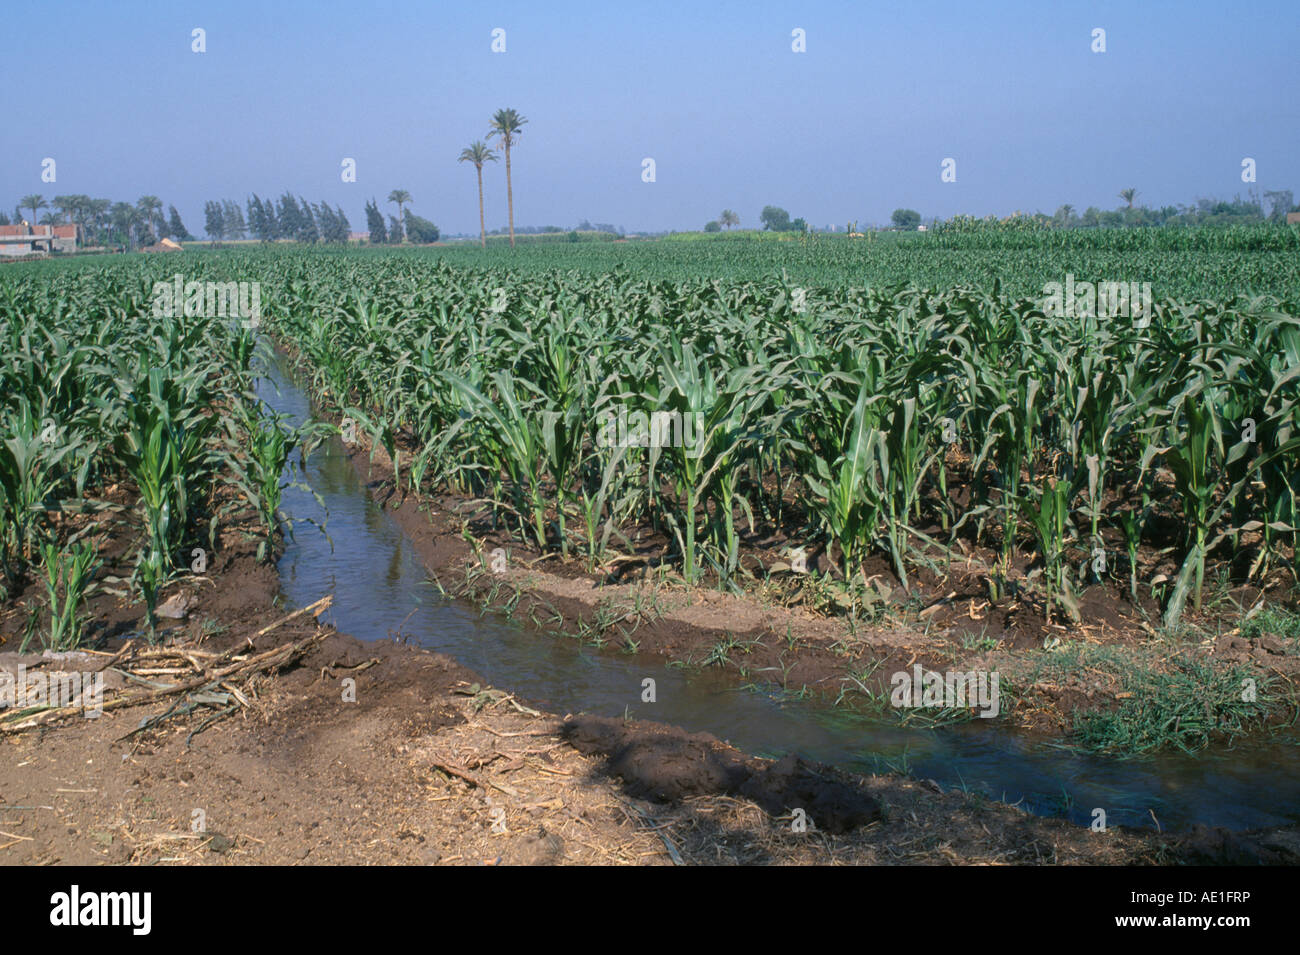 Egypt North Africa Middle East Nile River Delta Irrigation Channel